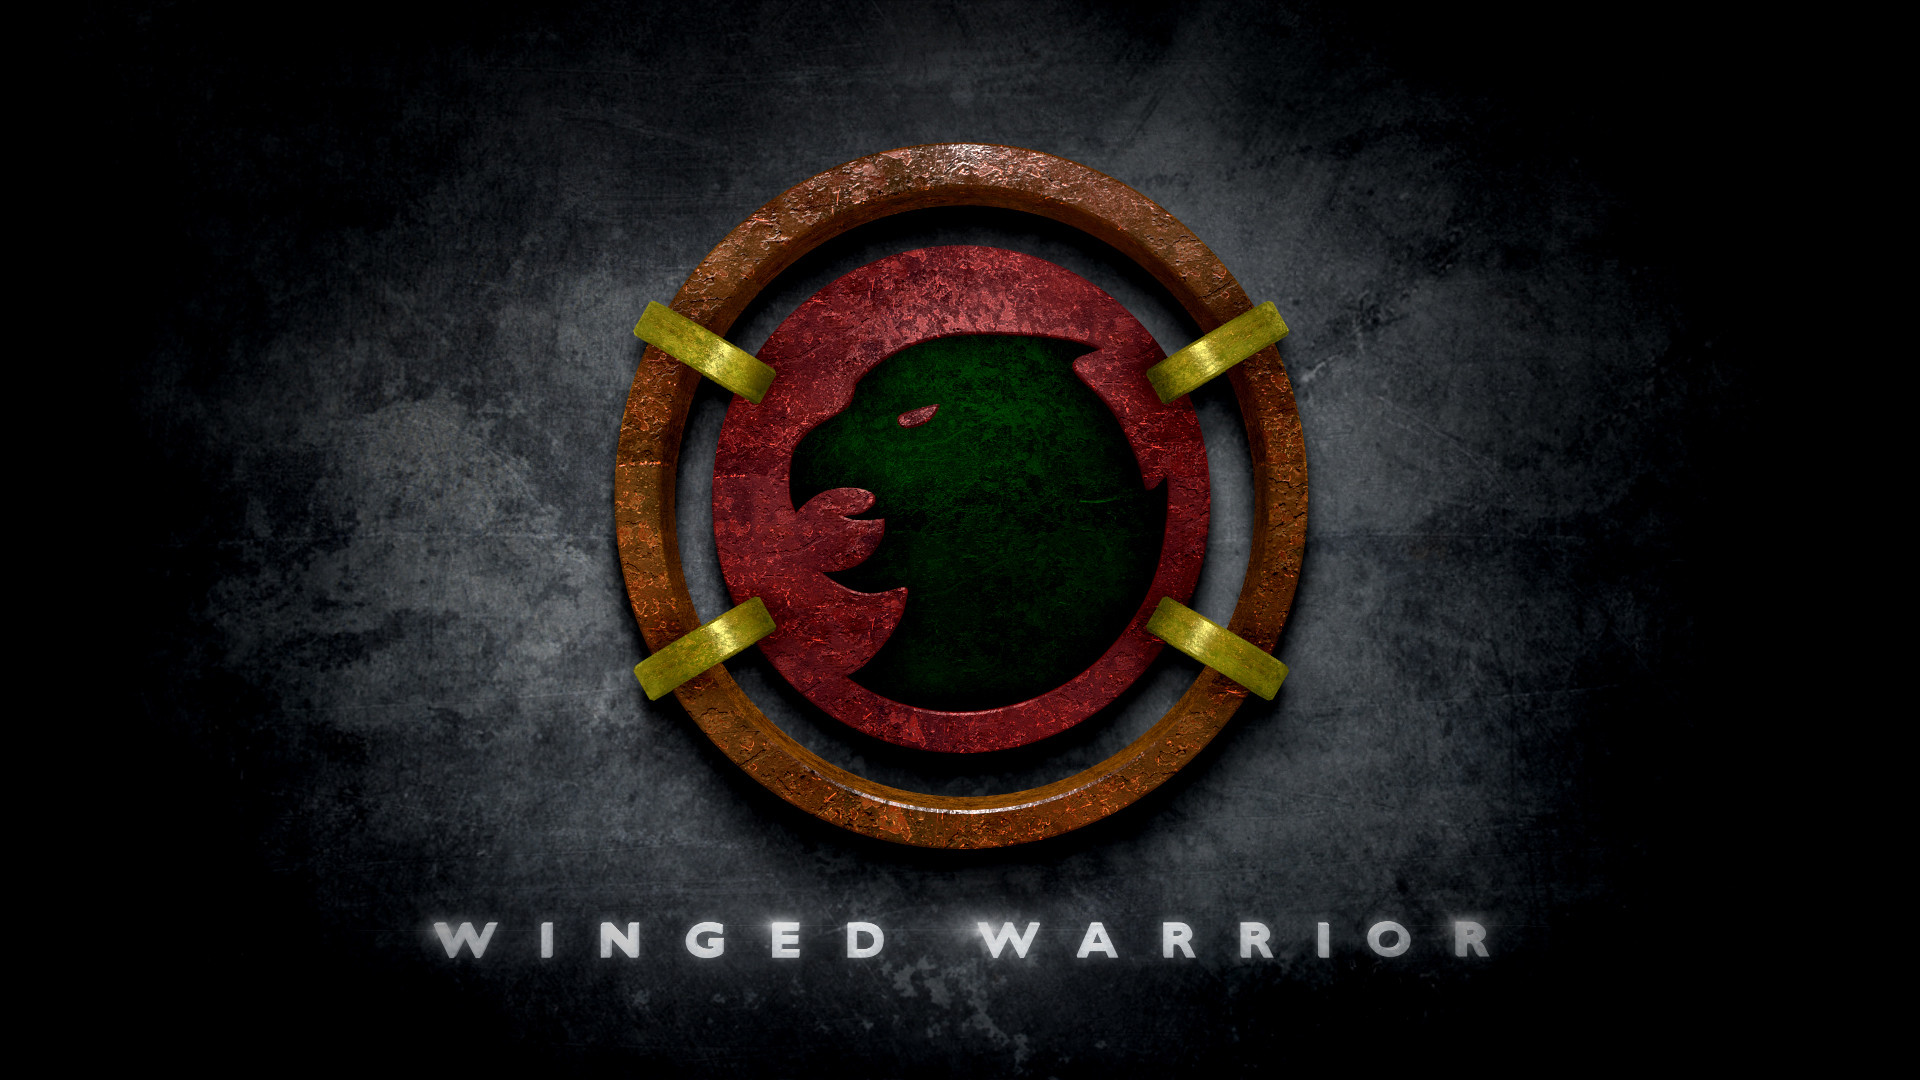 Hawkman Winged Warrior Logo in the Style of Man of Steel 1920x1080